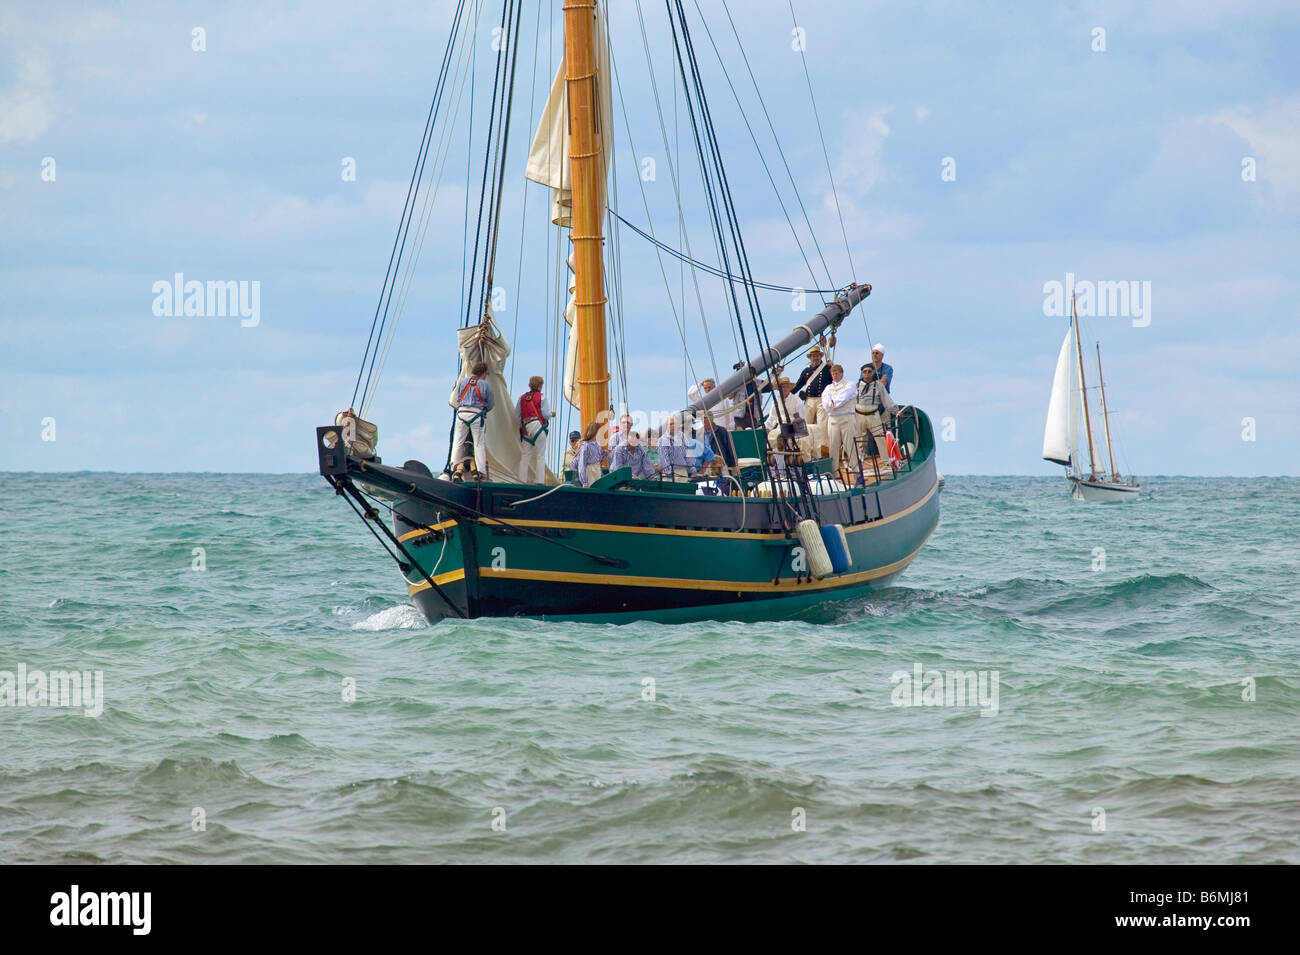 The tall ship Friends Good Will arrives at South Haven Michigan - Stock Image